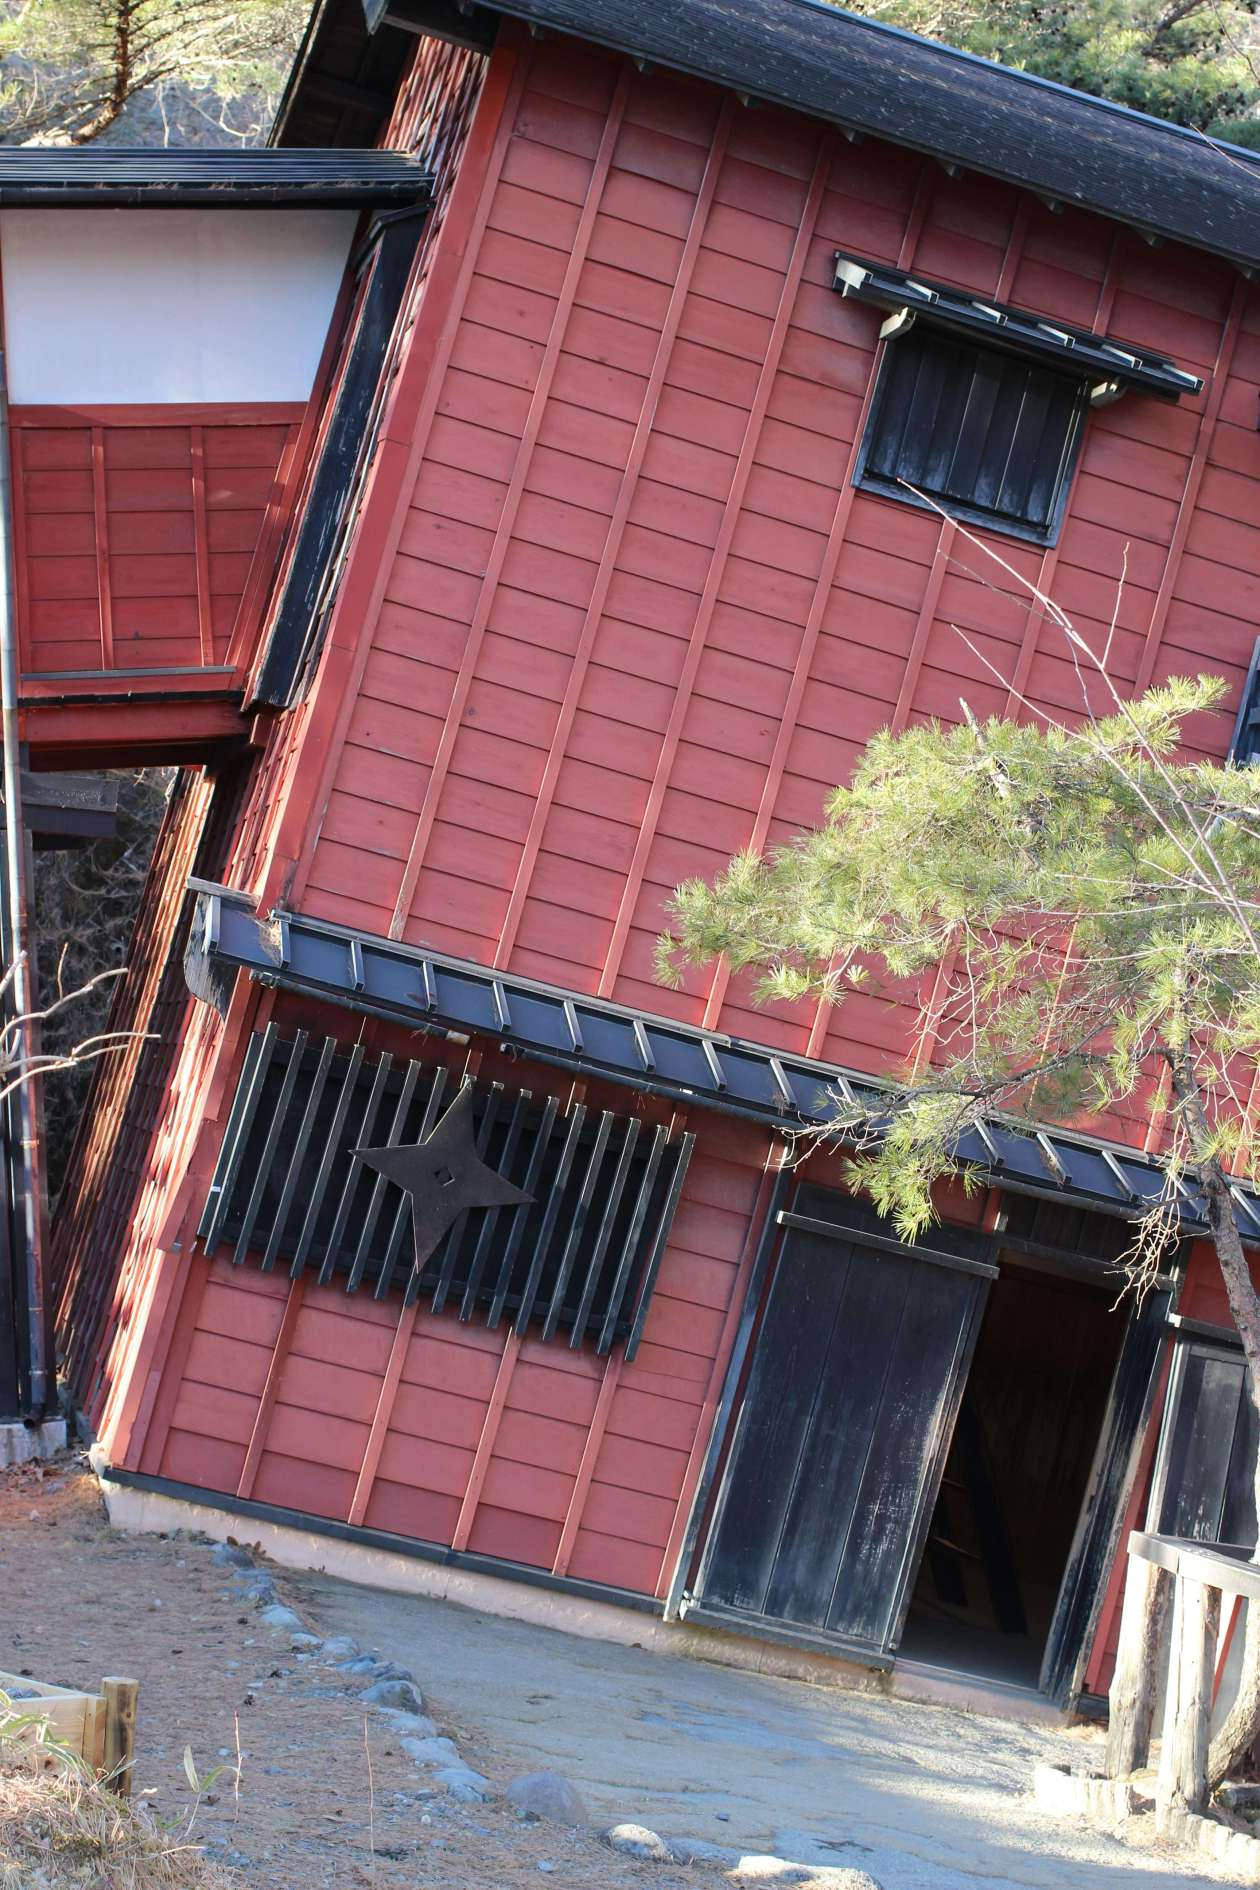 The crooked house, ninja training!, at Edo Wonderland